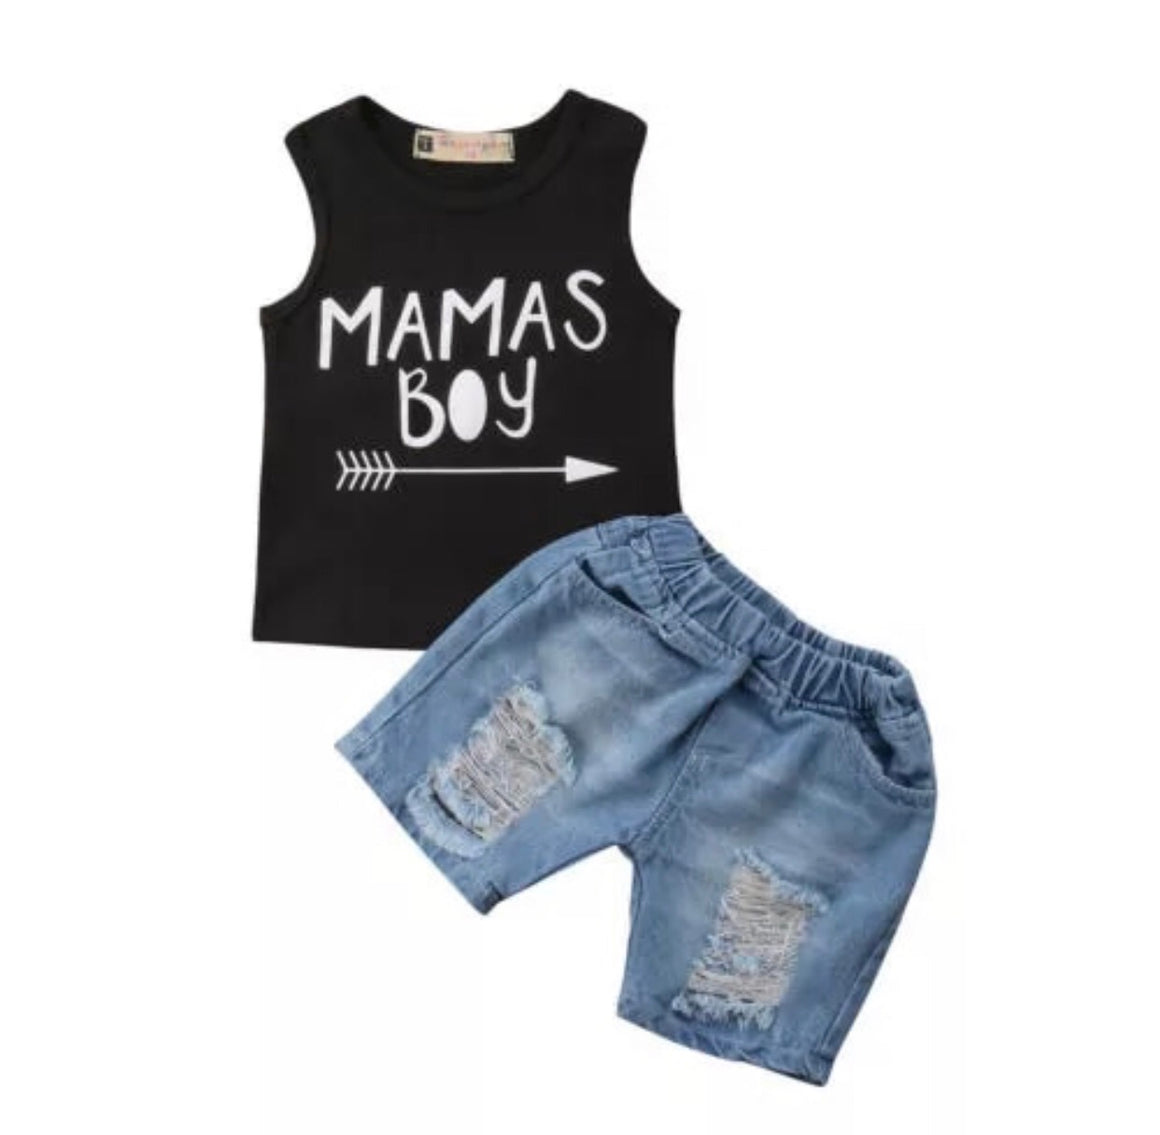 Mamas Boy Denim Shorts Set